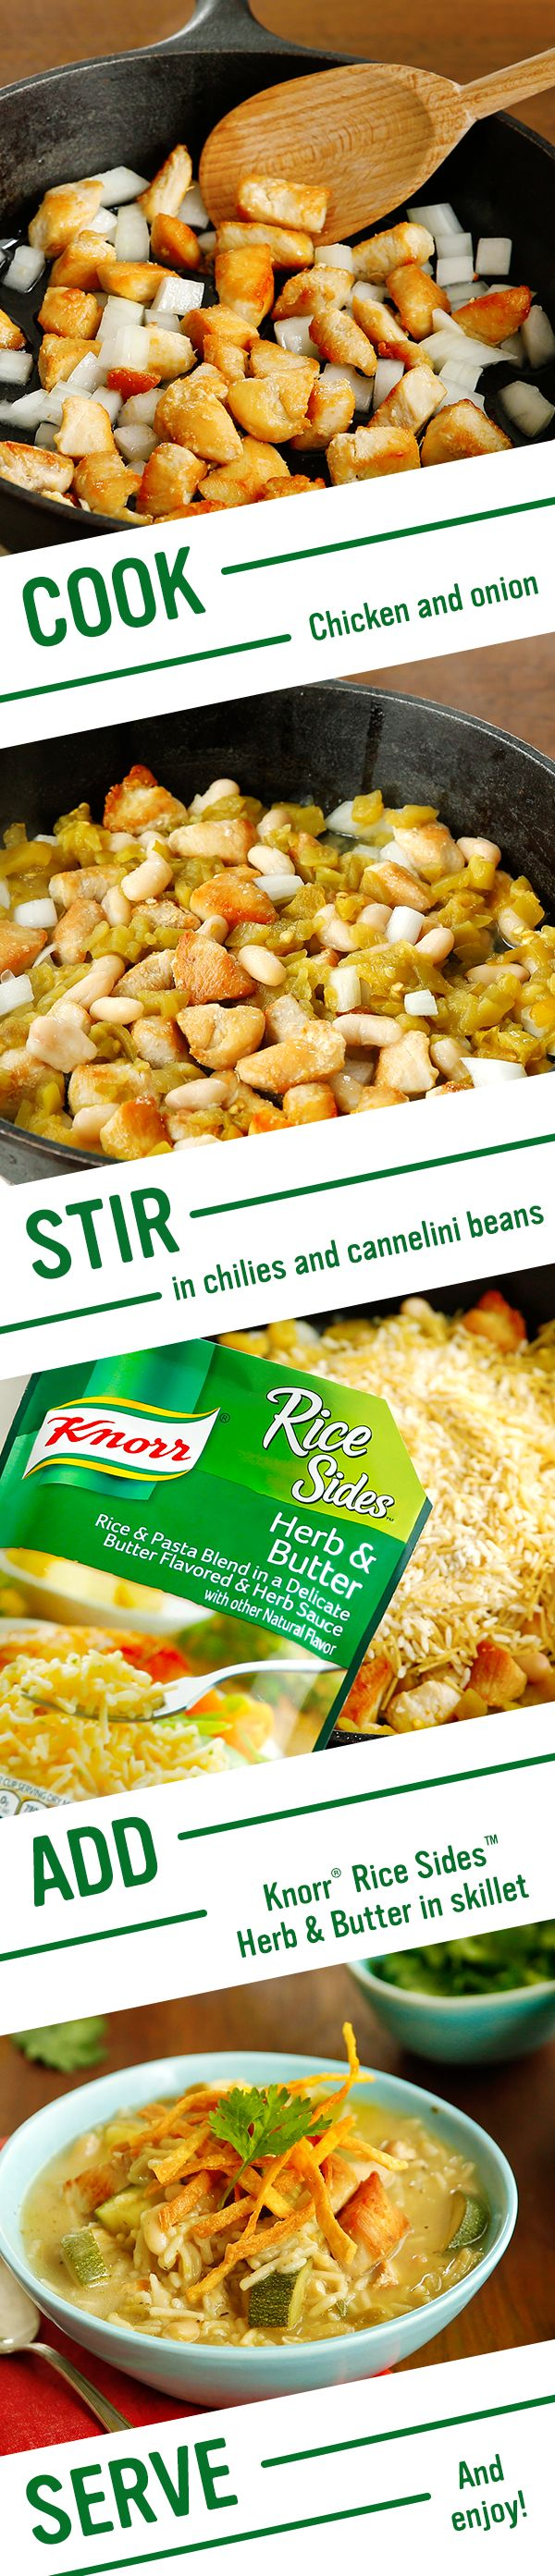 The best idea for an easy, homemade, family dinner? Knorr's flavorful White Bean Chicken Chili! The dish includes Southwestern staples: fresh zucchini, savory cilantro, & zesty limes. Make this meal in under 30 minutes tonight: 1. Cook chicken. Stir in ground cumin 2. Add canned chilies to cannellini beans, simmer Knorr® Rice Sides™ - Herb & Butter, & mix zucchini w/ lime juice 3. Serve w/ lime wedges, chopped fresh cilantro, & fried corn tortilla strips/chips. Enjoy!